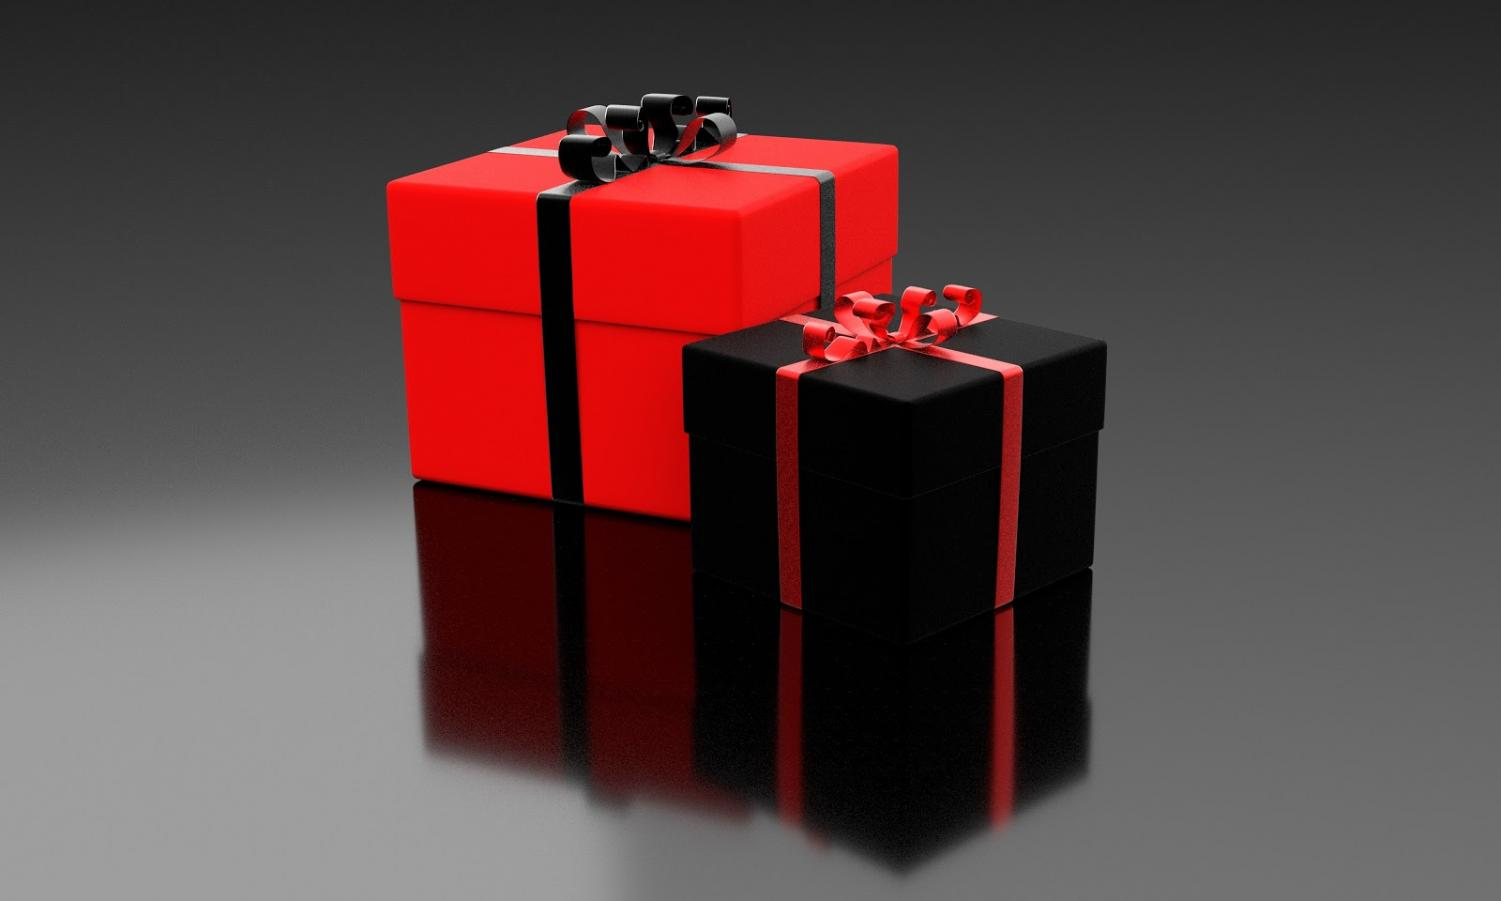 Gifts on Valentine's Day come in a variety of shapes and sizes, but usually are wrapped in a red-themed color scheme.